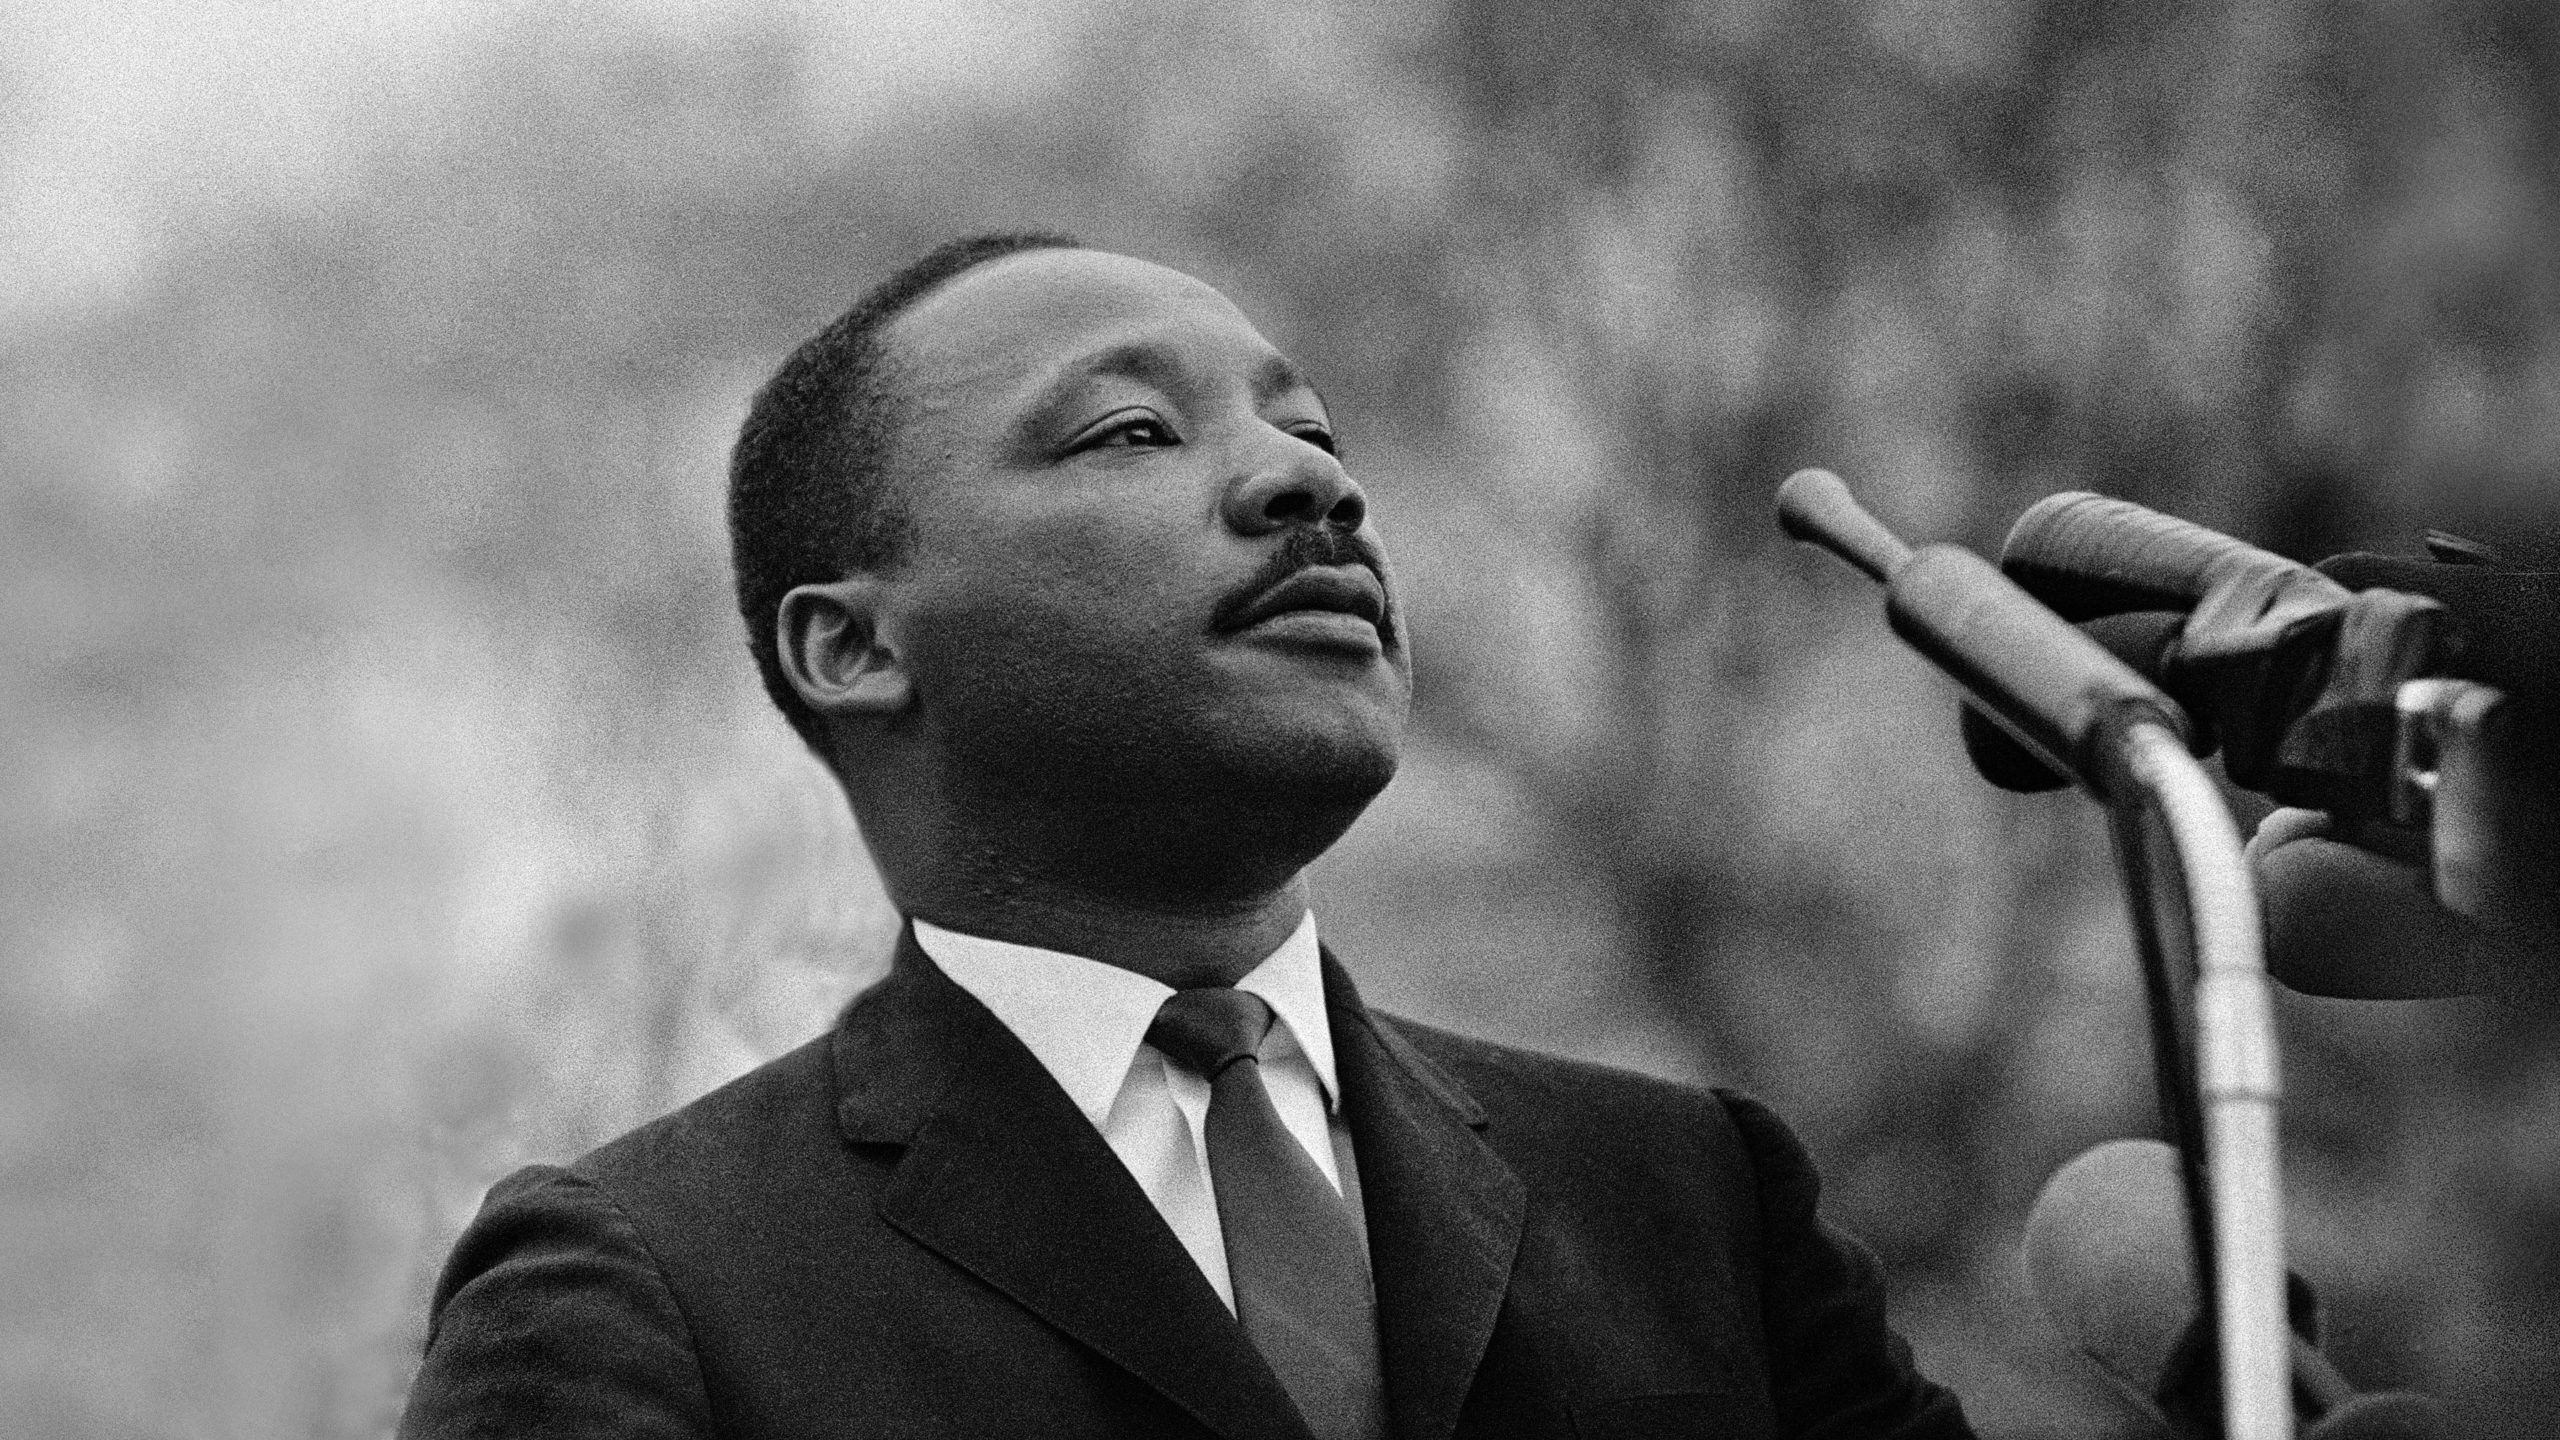 MONTGOMERY, AL - MARCH 25:  Dr. Martin Luther King, Jr. speaking before crowd of 25,000 Selma To Montgomery, Alabama civil rights marchers, in front of Montgomery, Alabama state capital building. On March 25, 1965 in Montgomery, Alabama. (Photo by Stephen F. Somerstein/Getty Images)